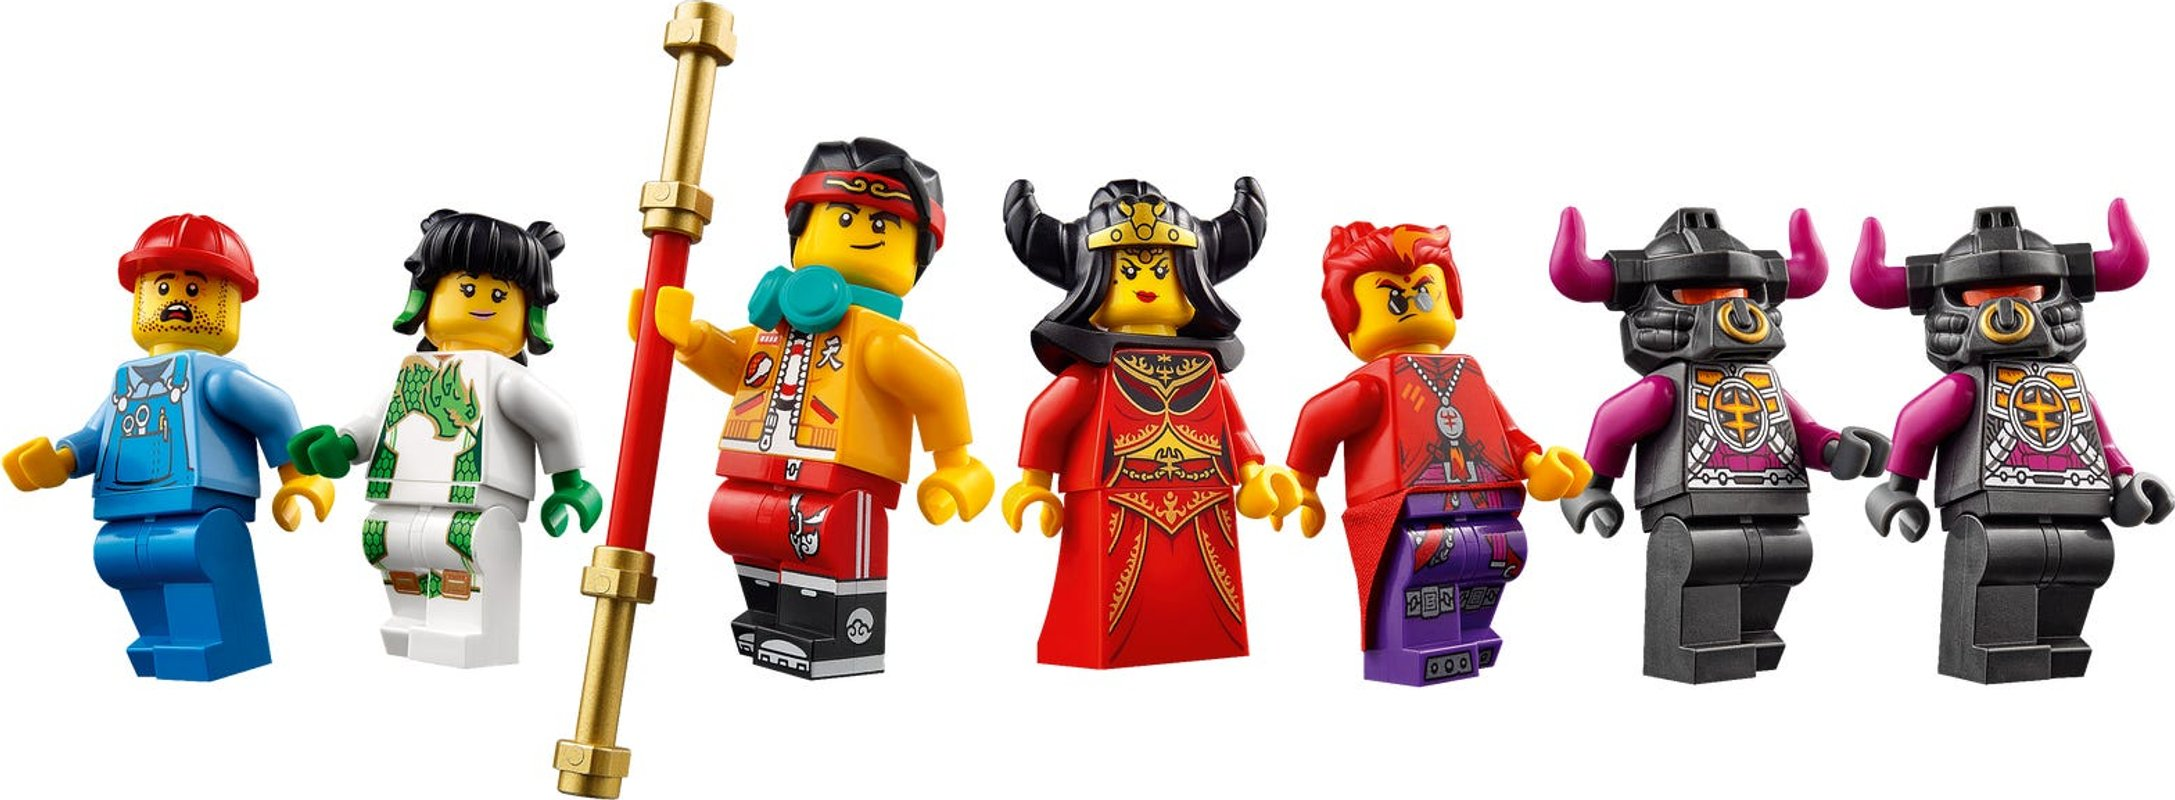 The Flaming Foundry minifigures